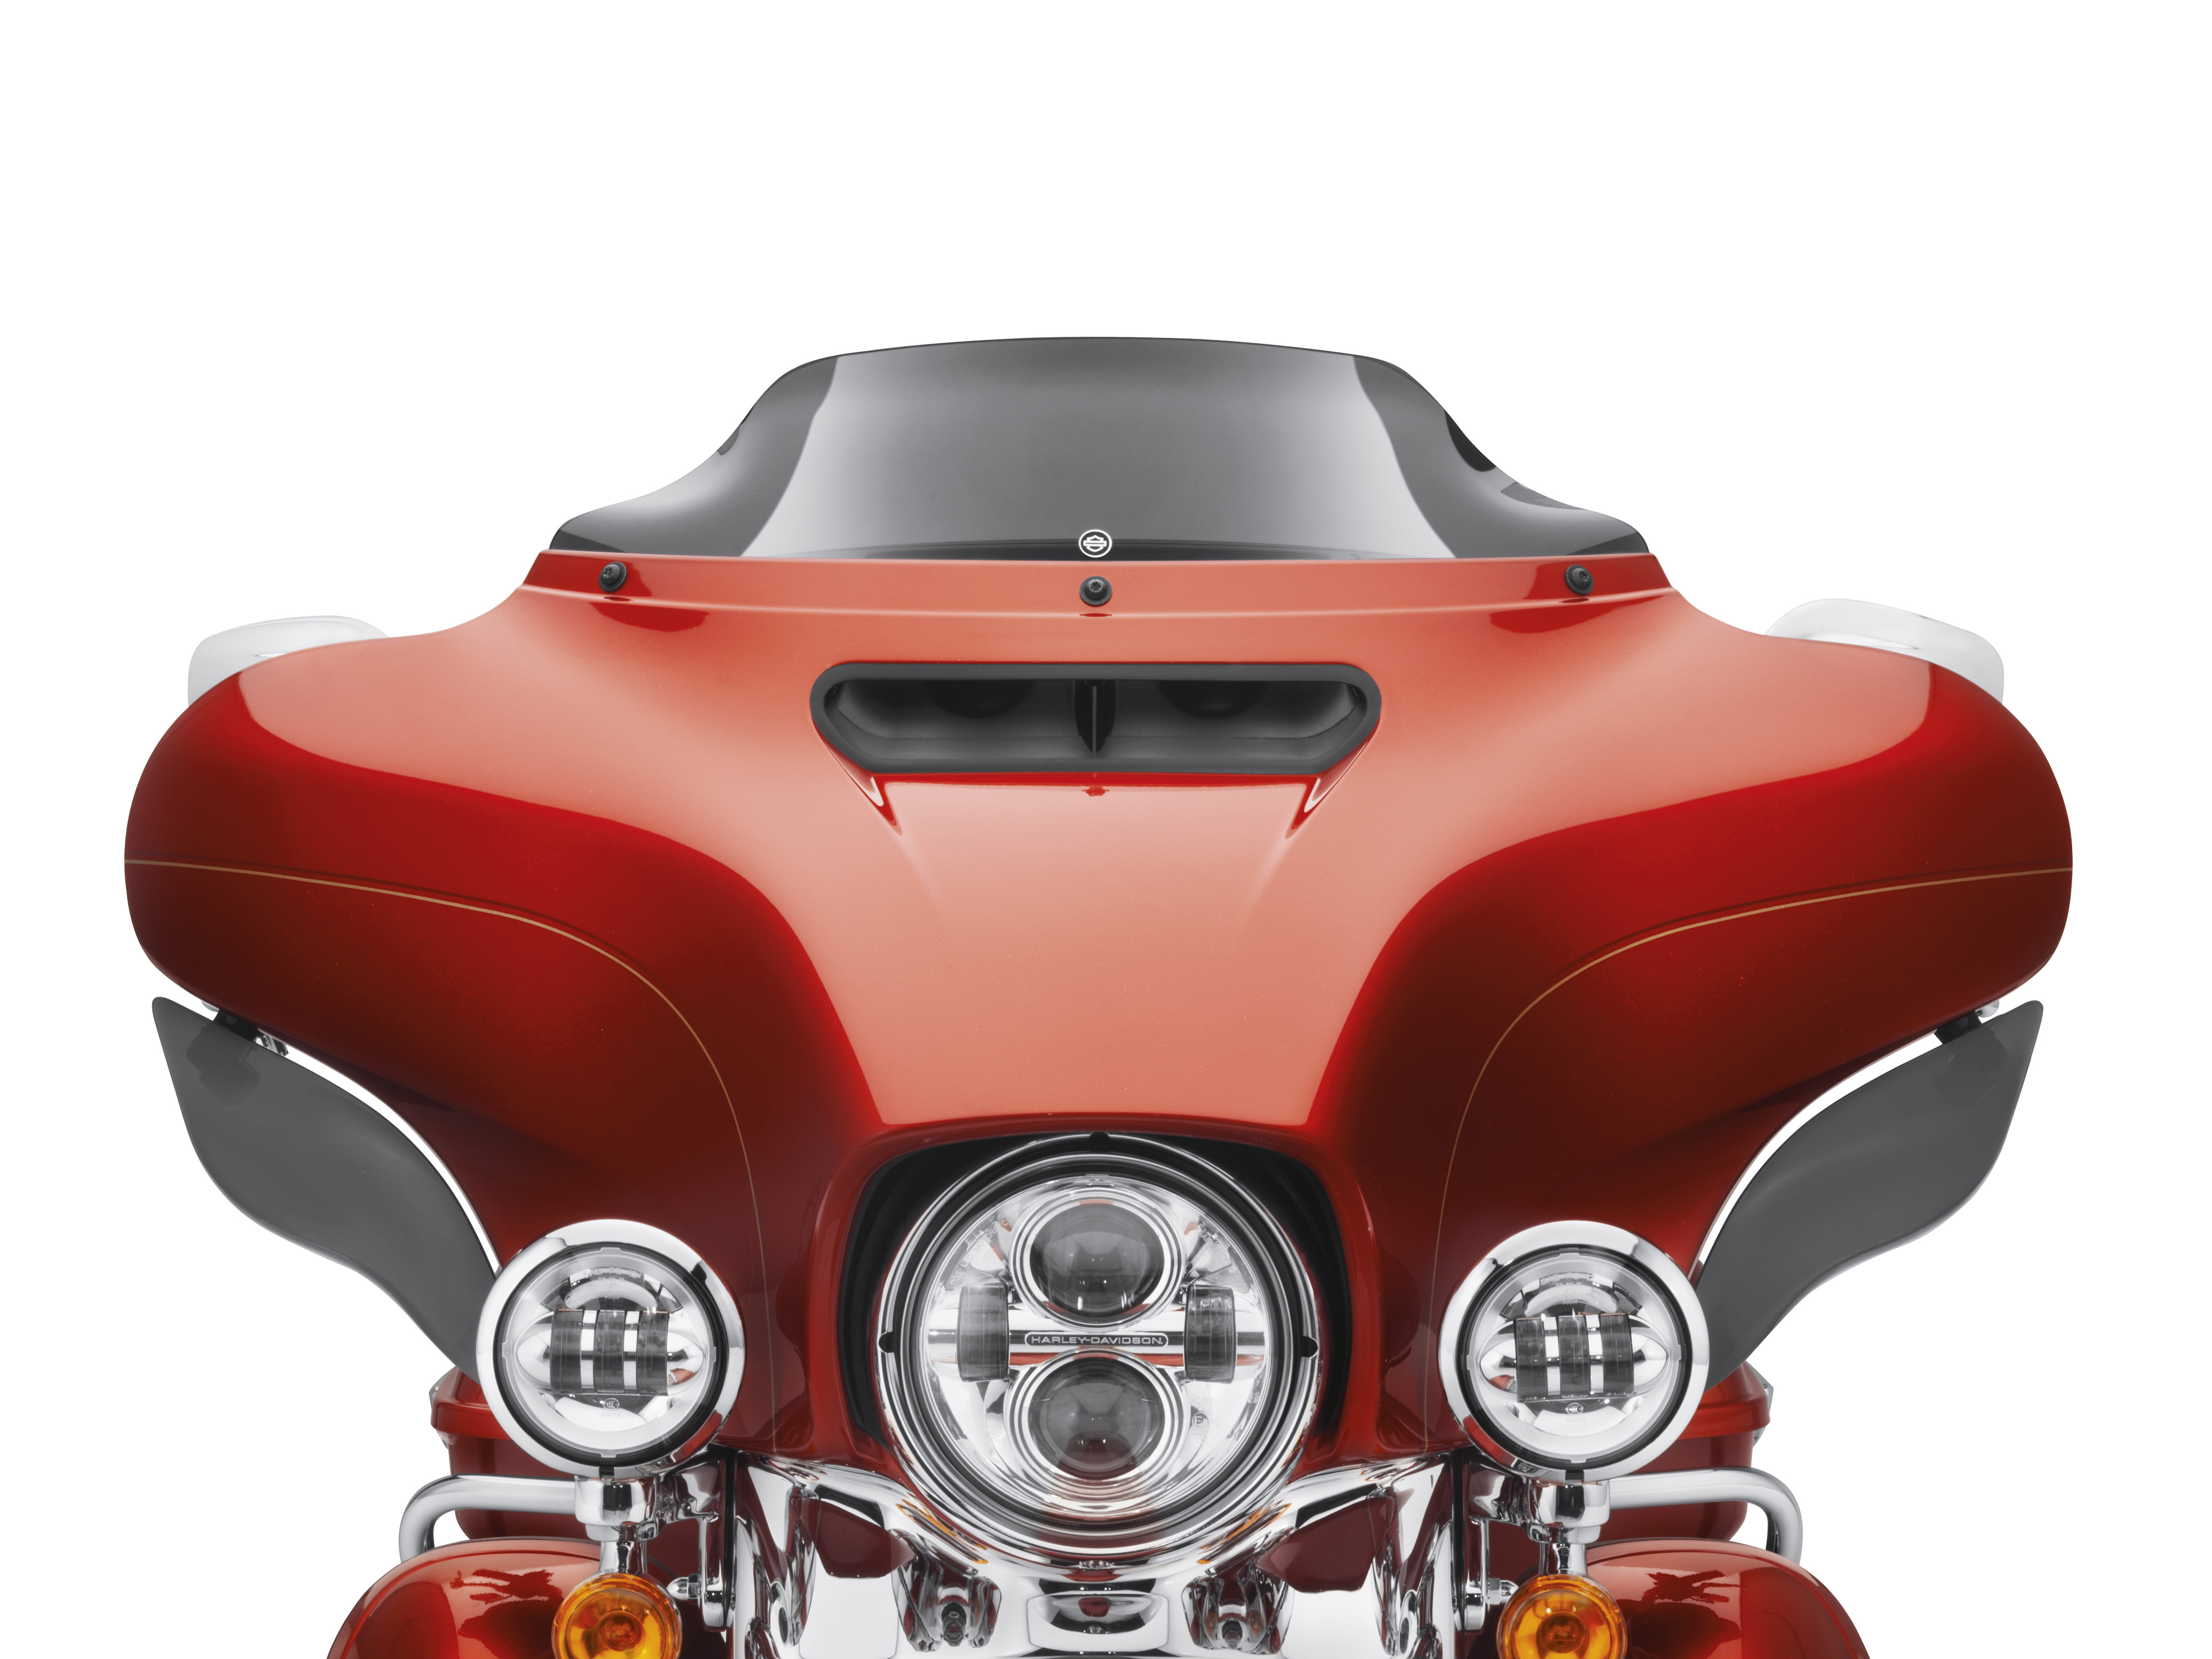 Harley-Davidson Project Rushmore